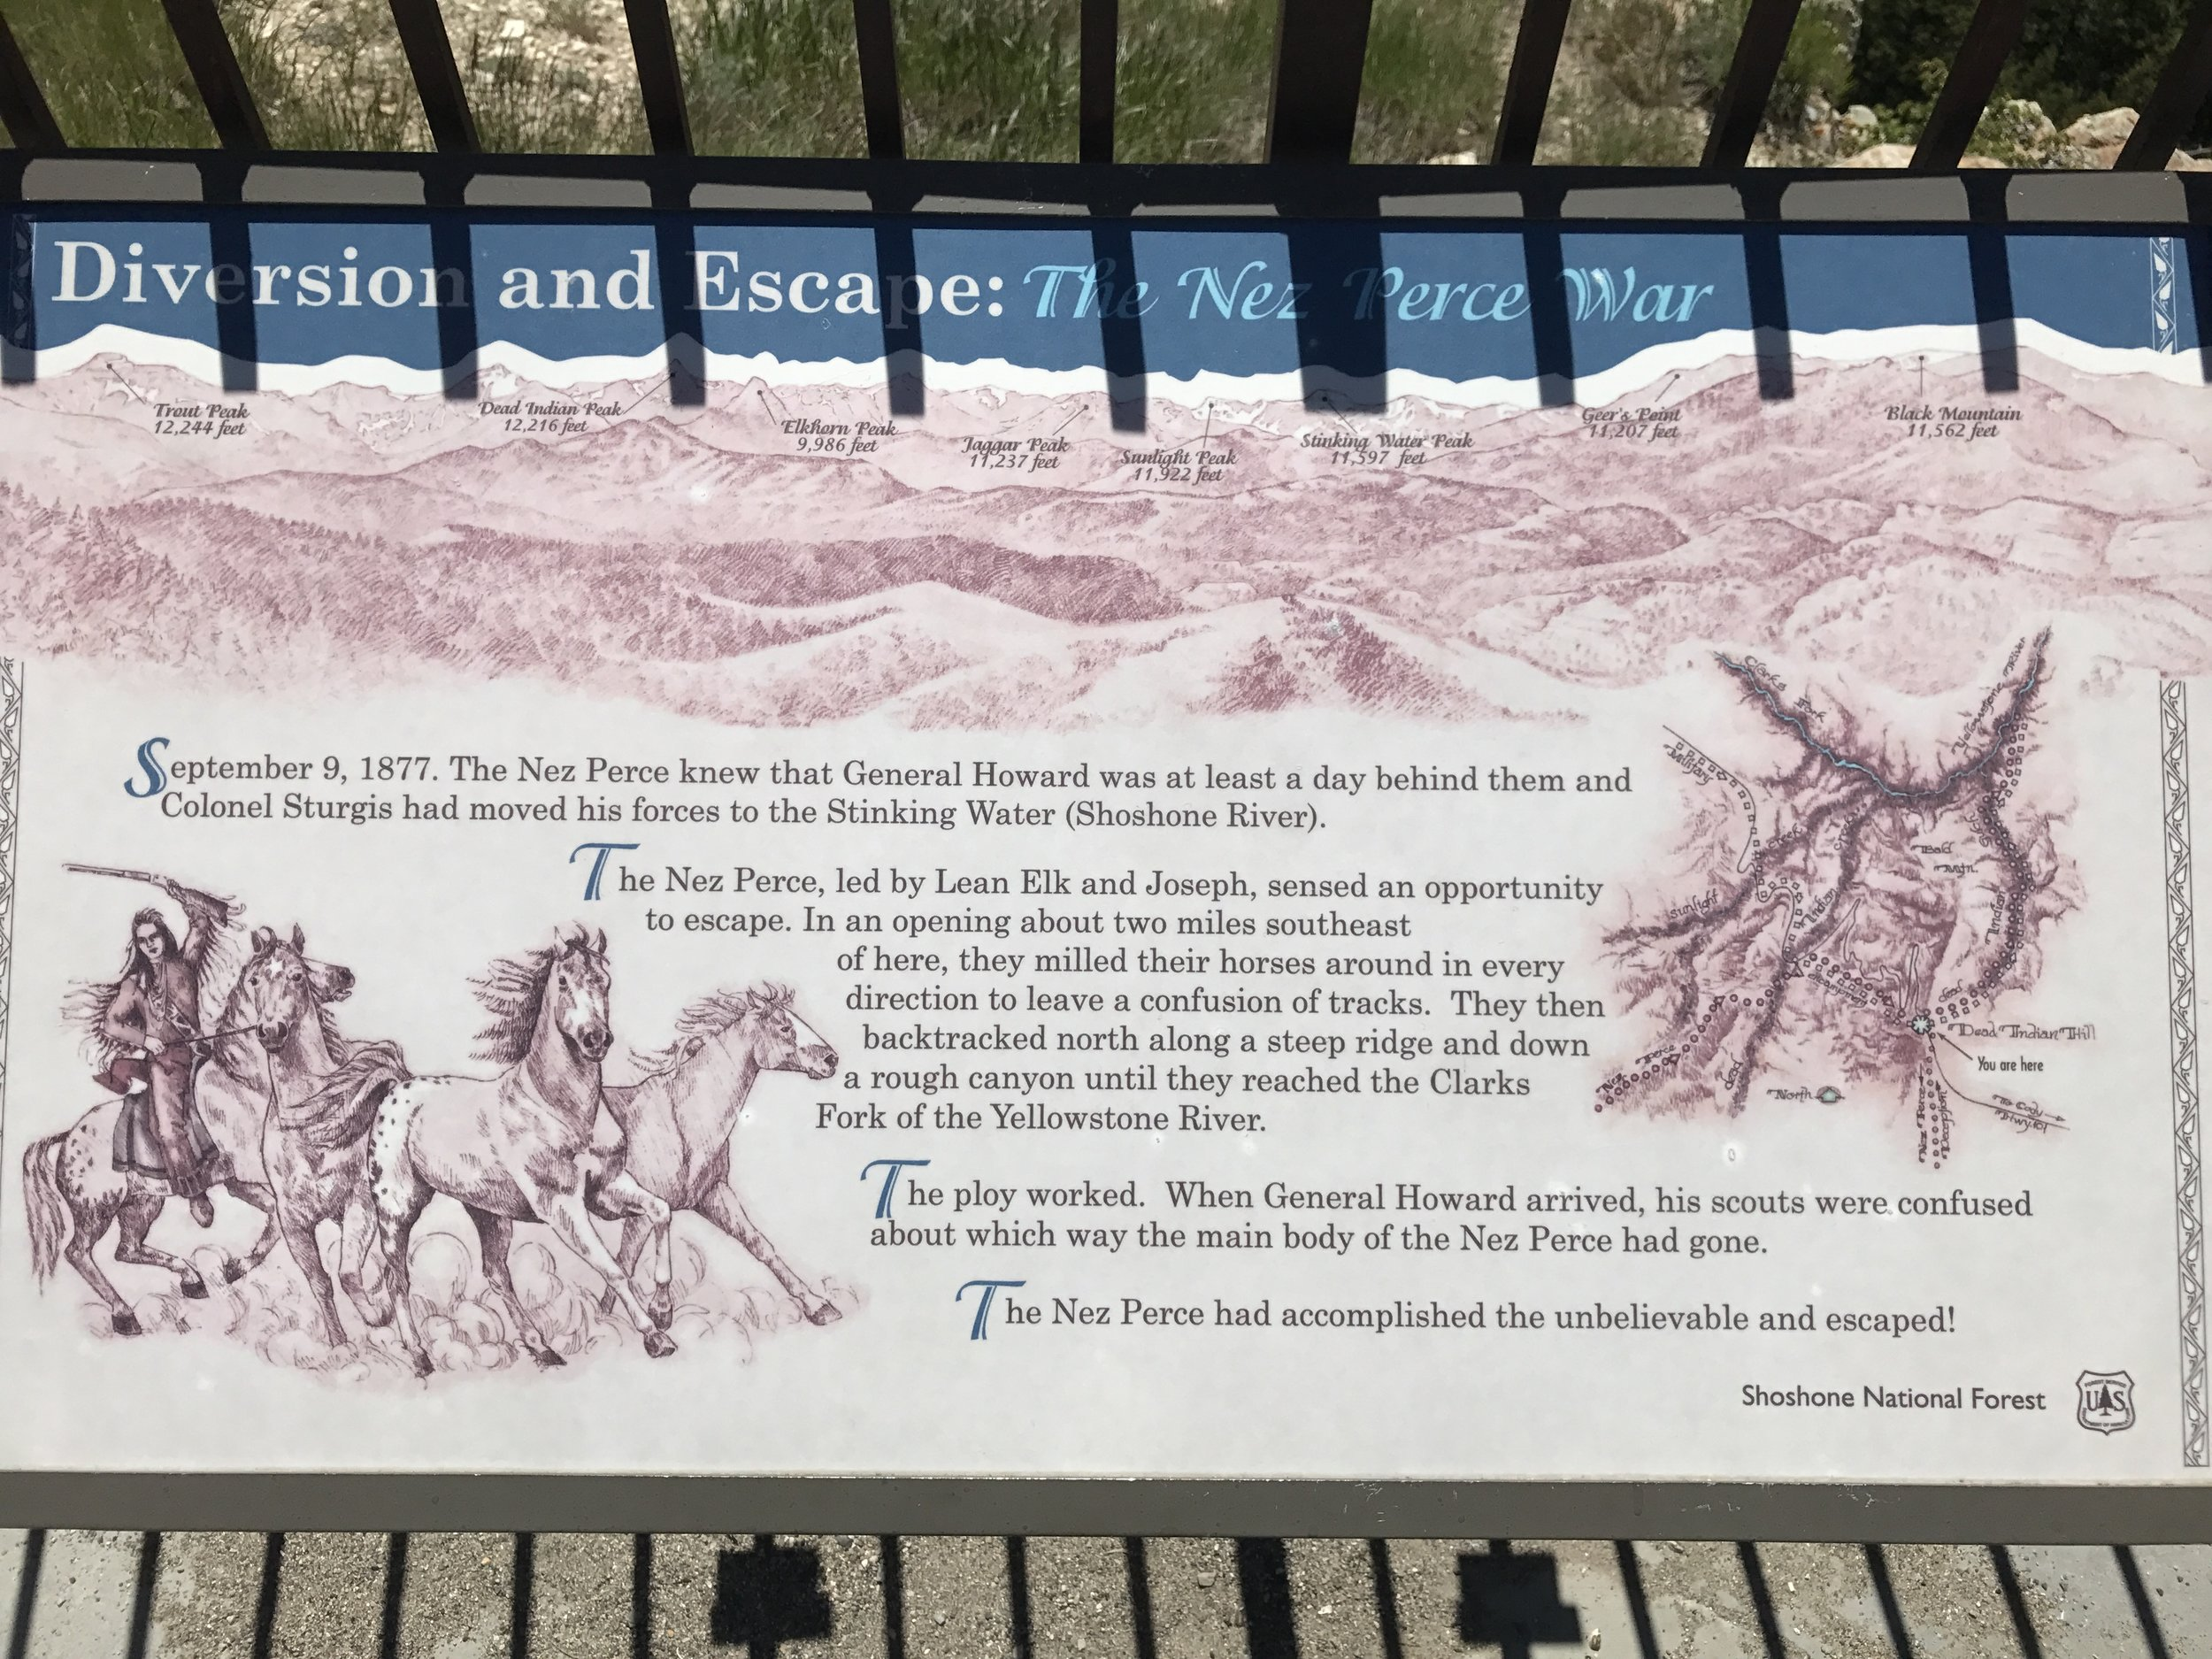 The region has great historical significant too.